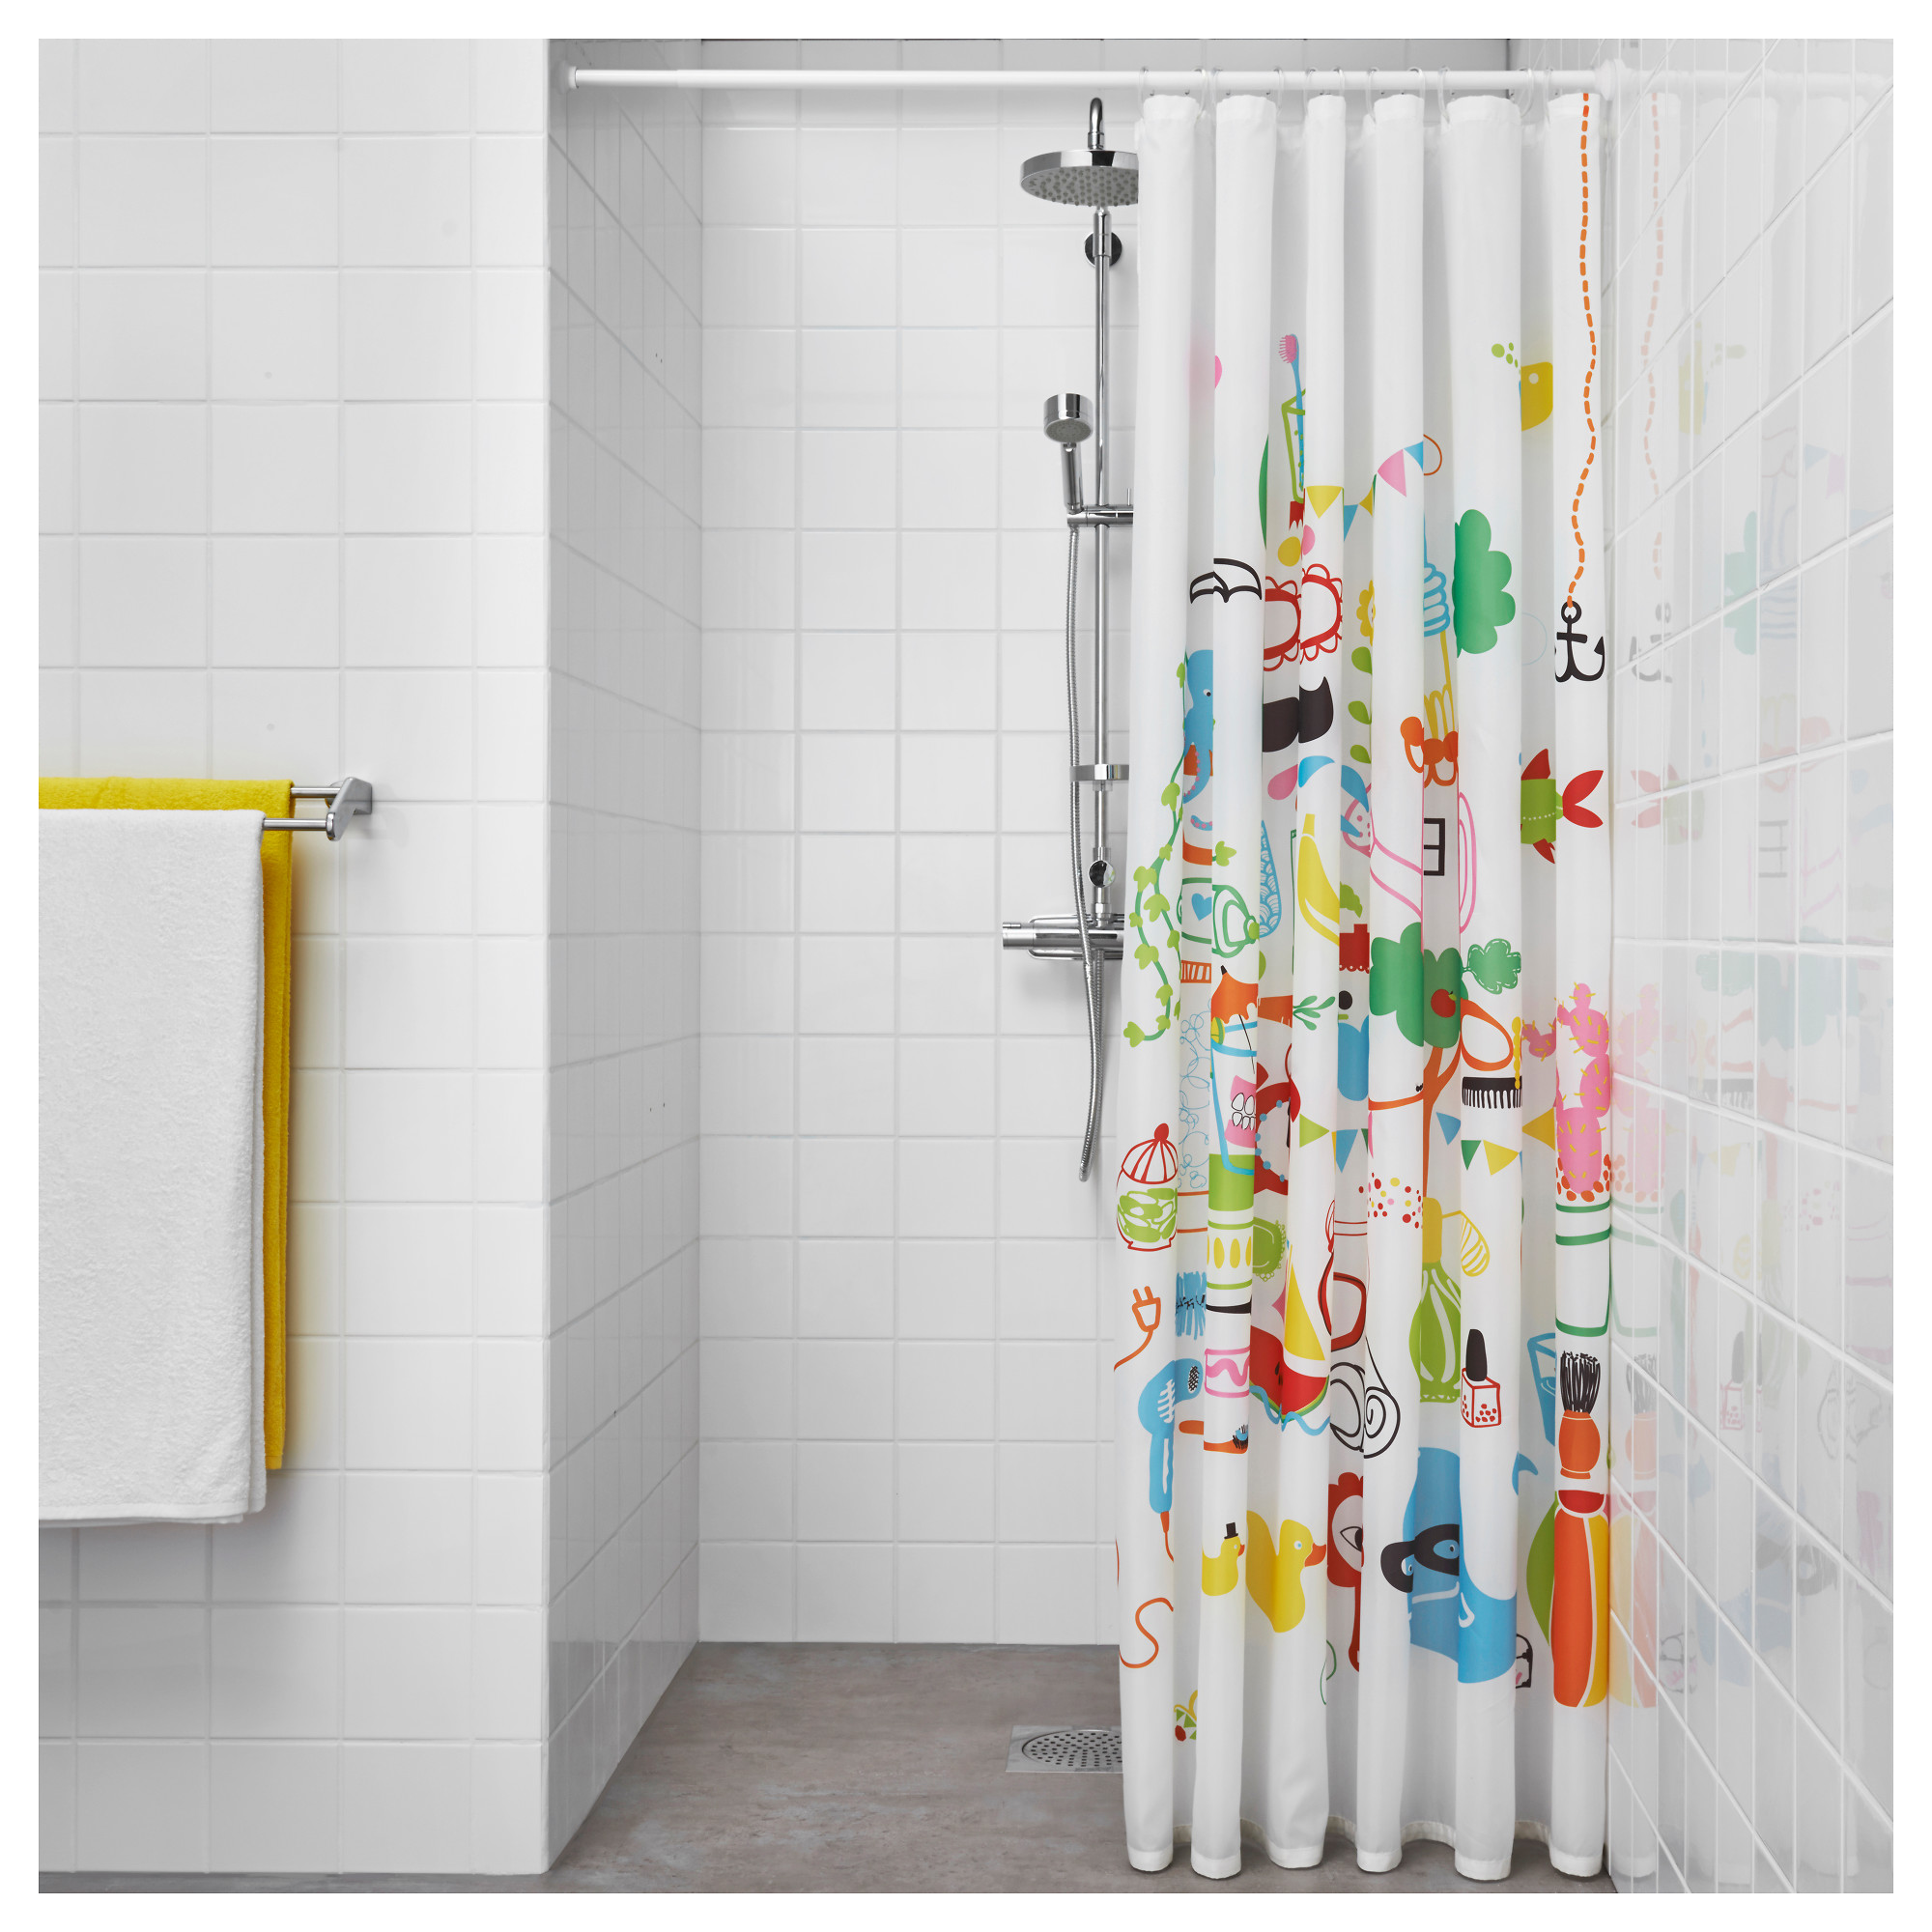 Ikea Shower Curtain for Best Your Bathroom Decoration: Bathroom Curtain Rods | 84 Shower Curtains | Ikea Shower Curtain